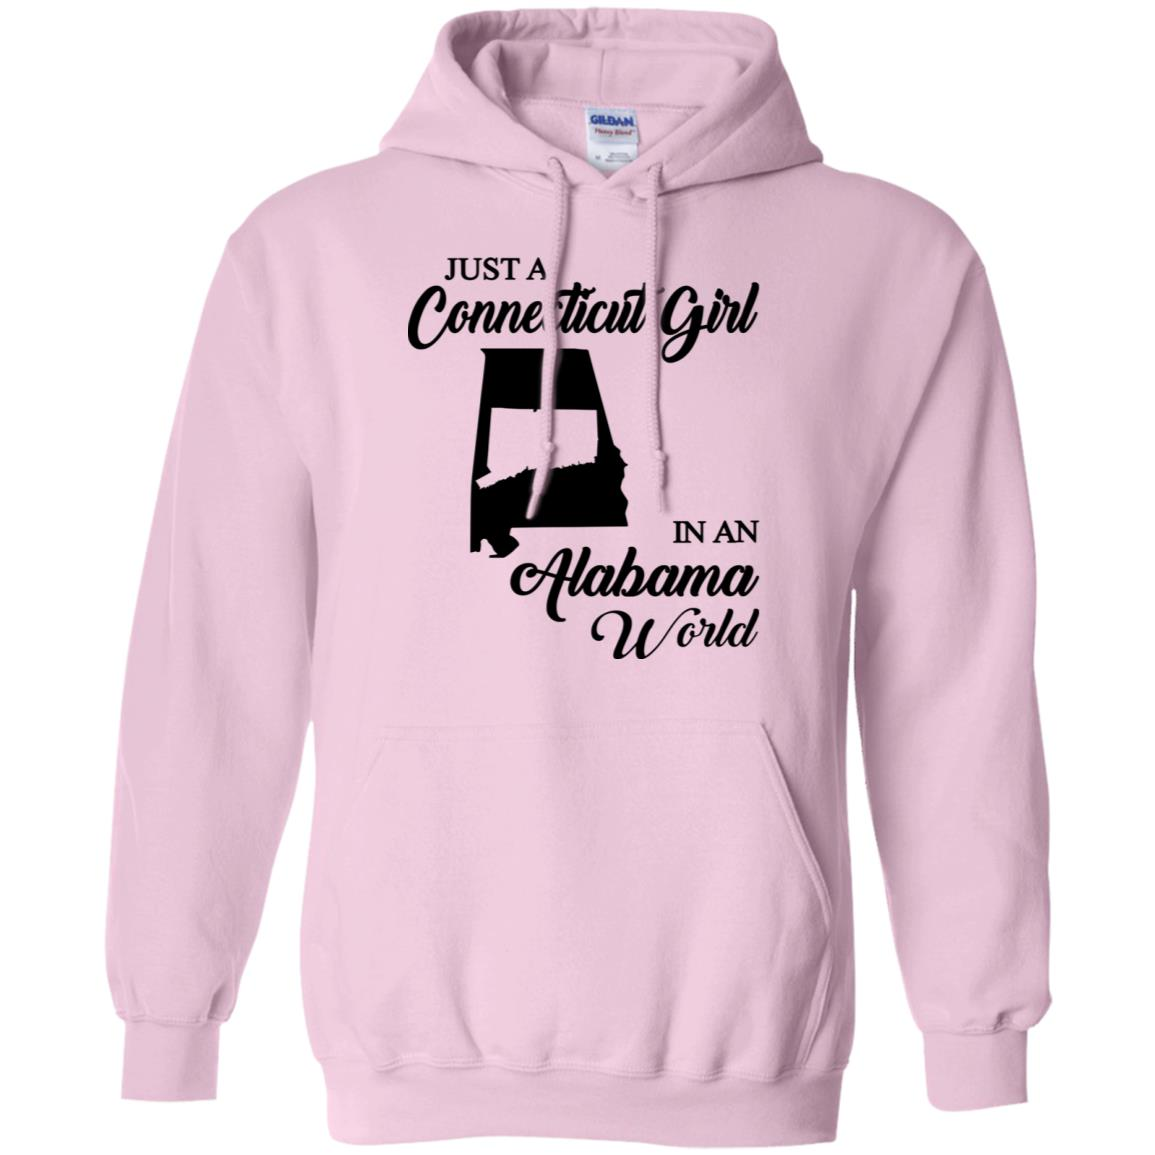 Just A Connecticut Girl In An Alabama World Connecticut Hoodie